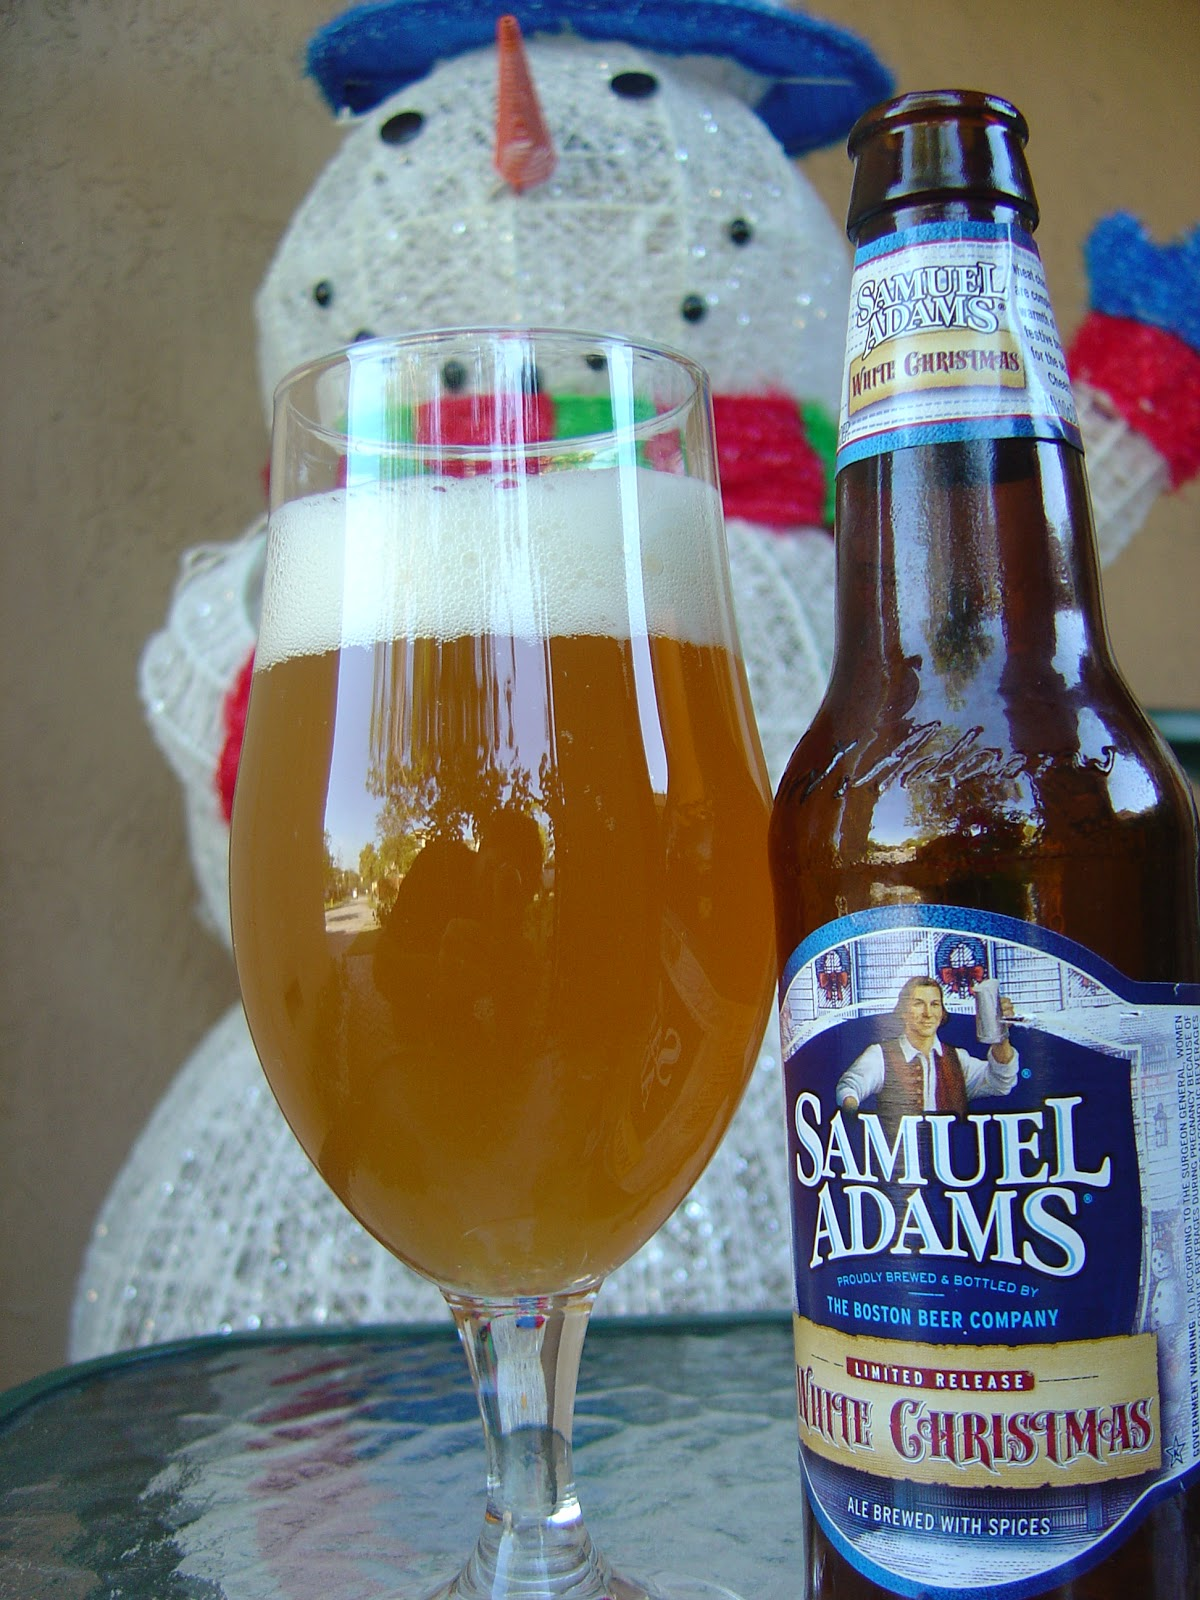 Sam Adams White Christmas.Daily Beer Review Samuel Adams White Christmas